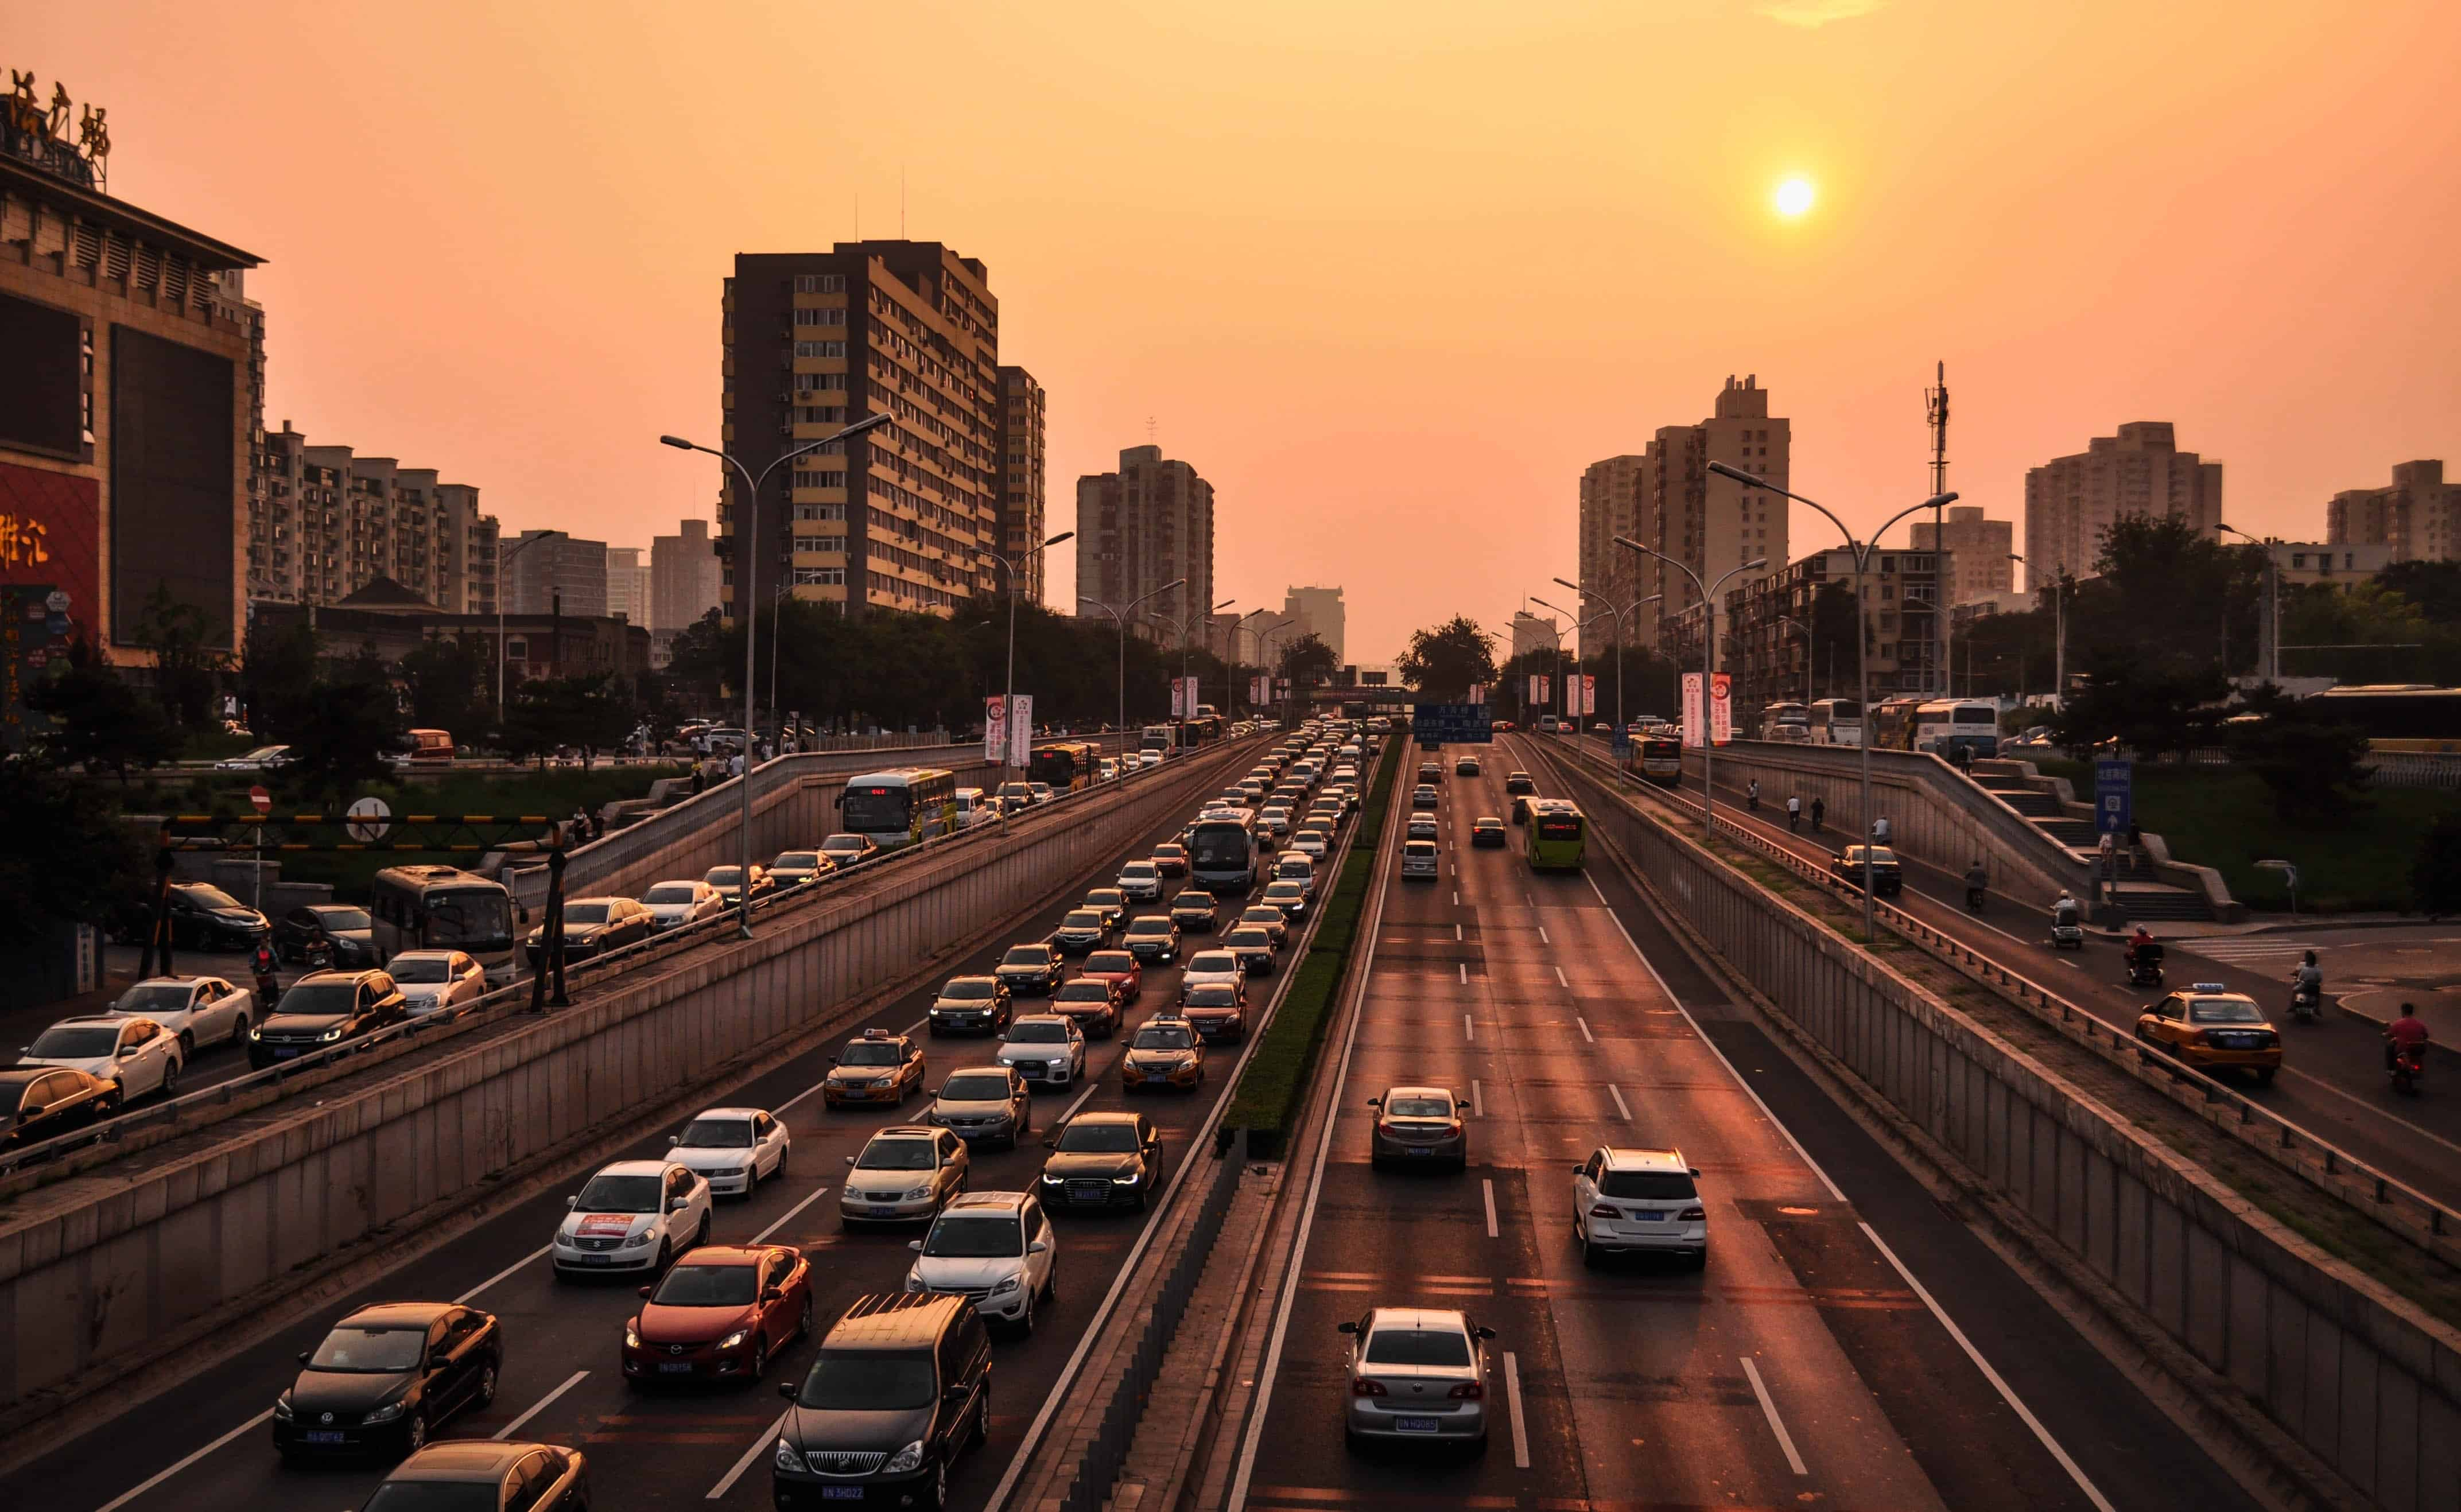 How to obtain driving license in Pattaya?